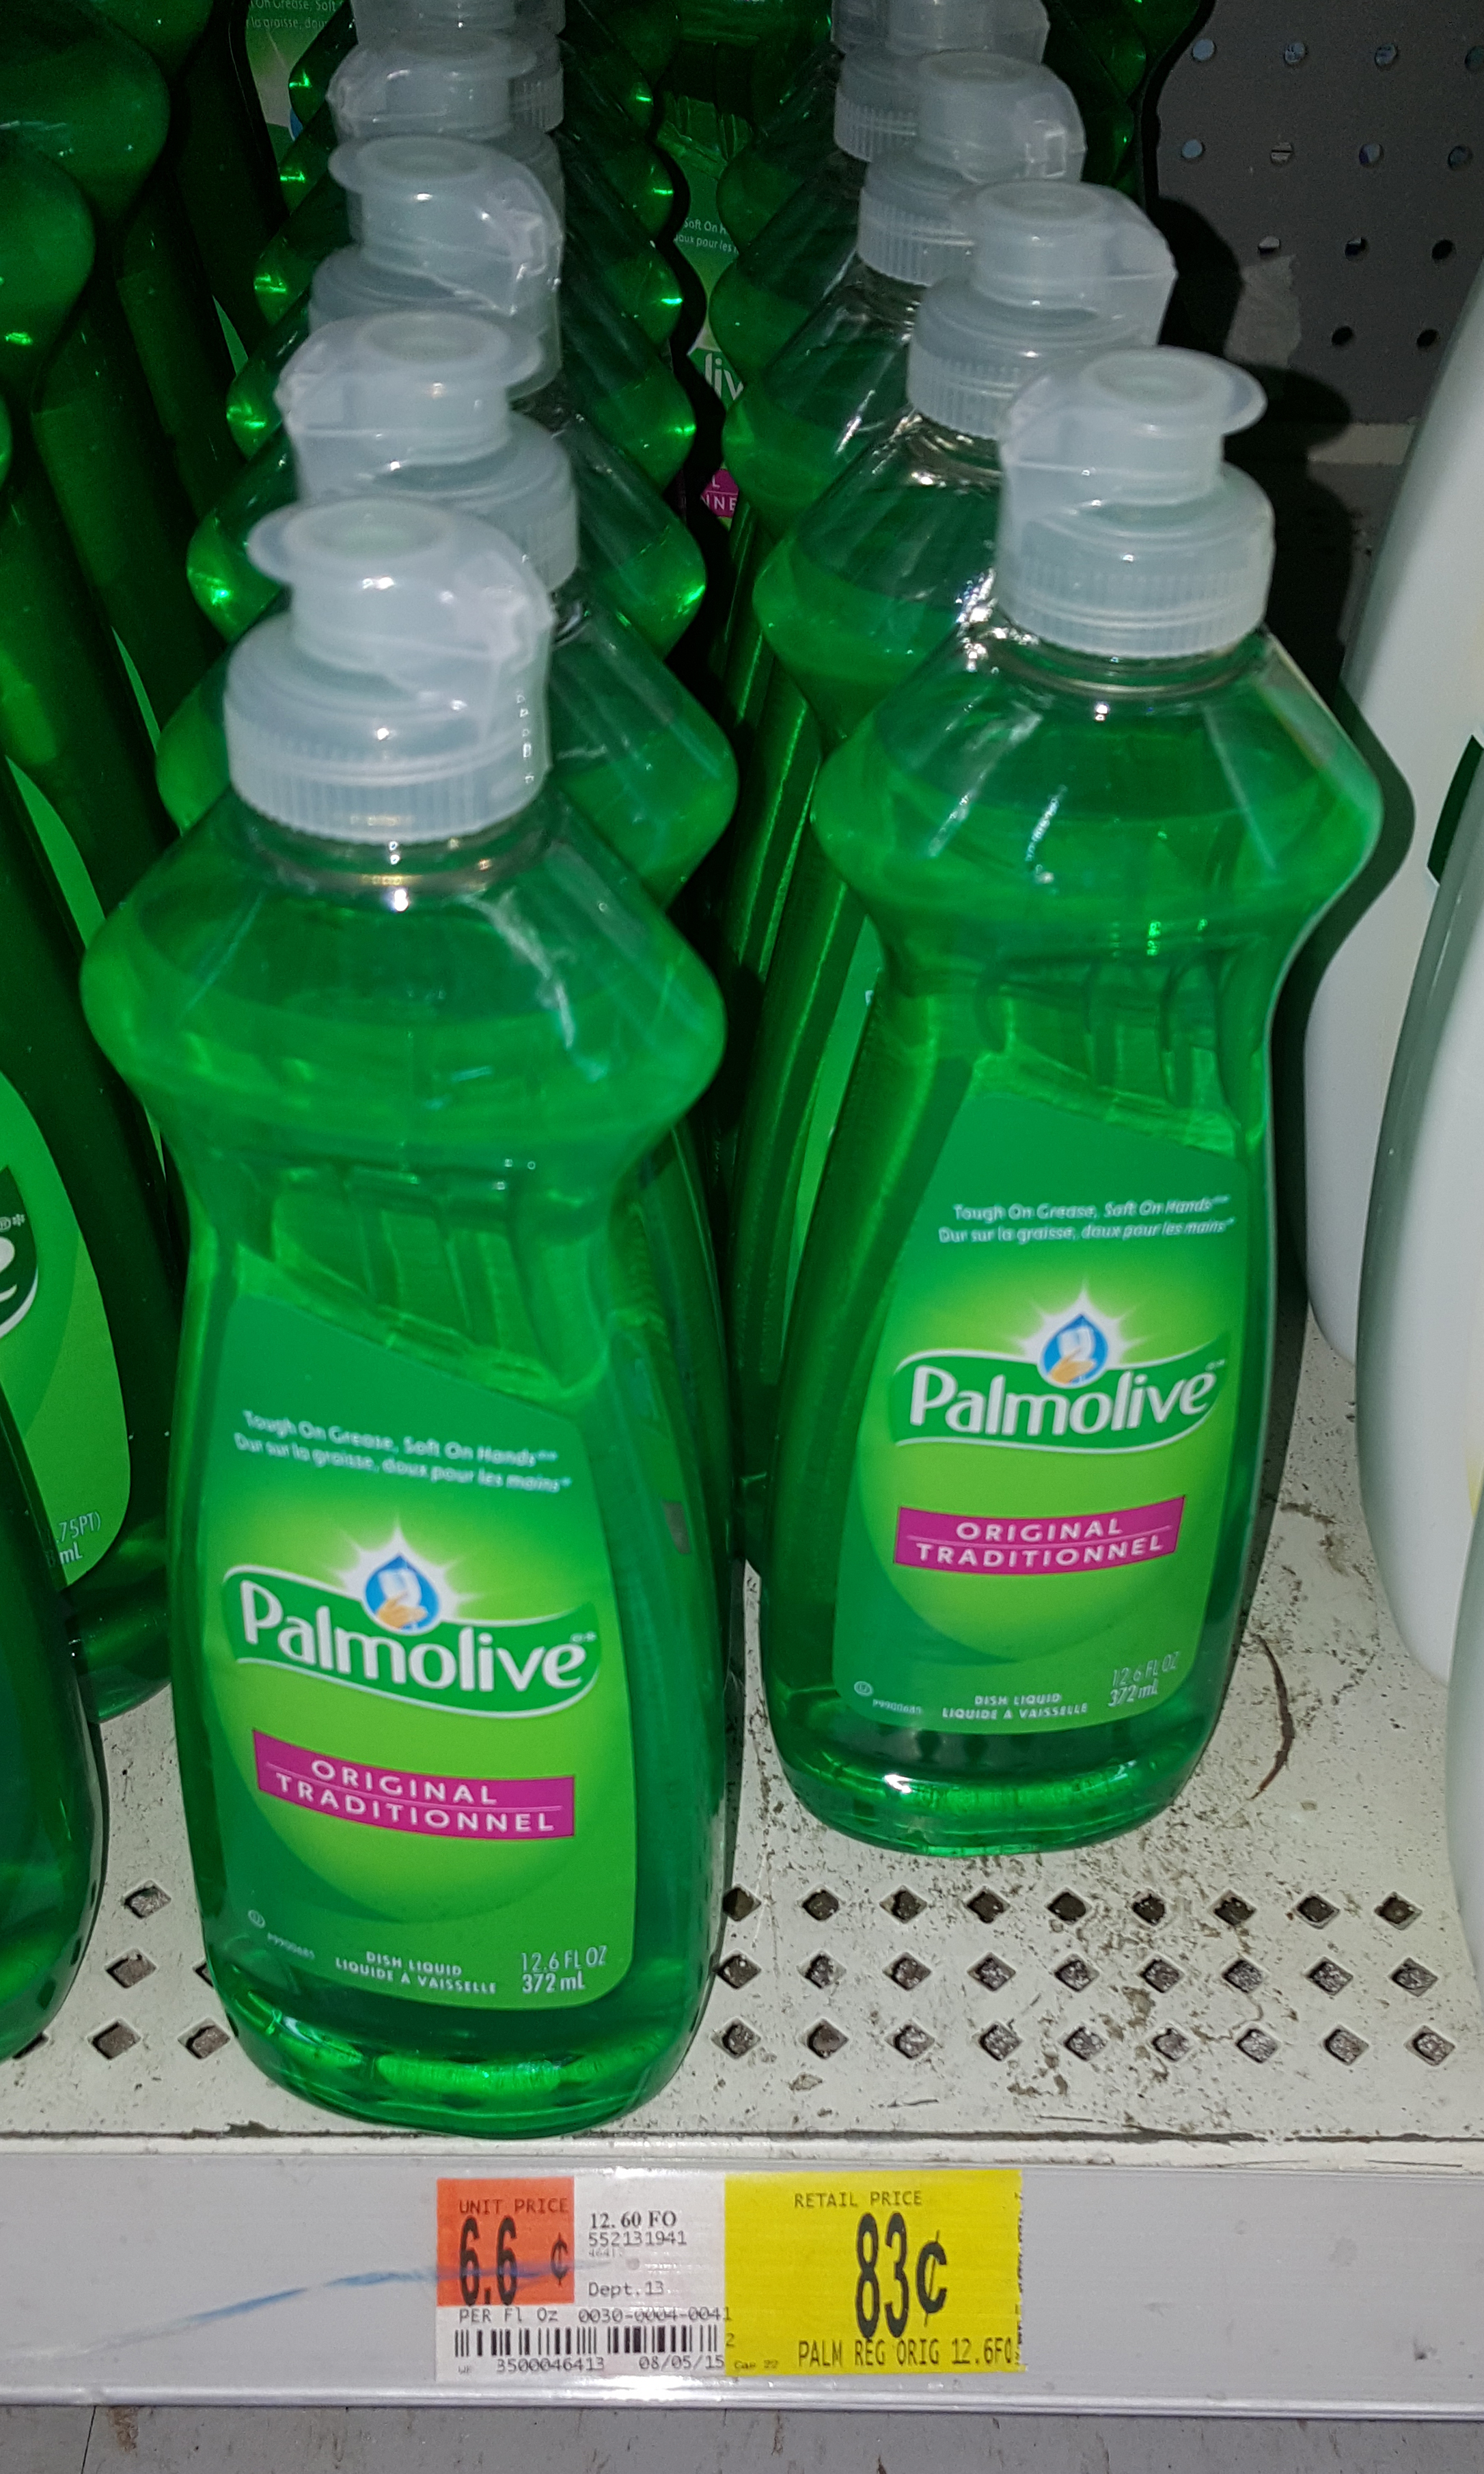 Palmolive Coupon Means Just $0.63 At Walmart!